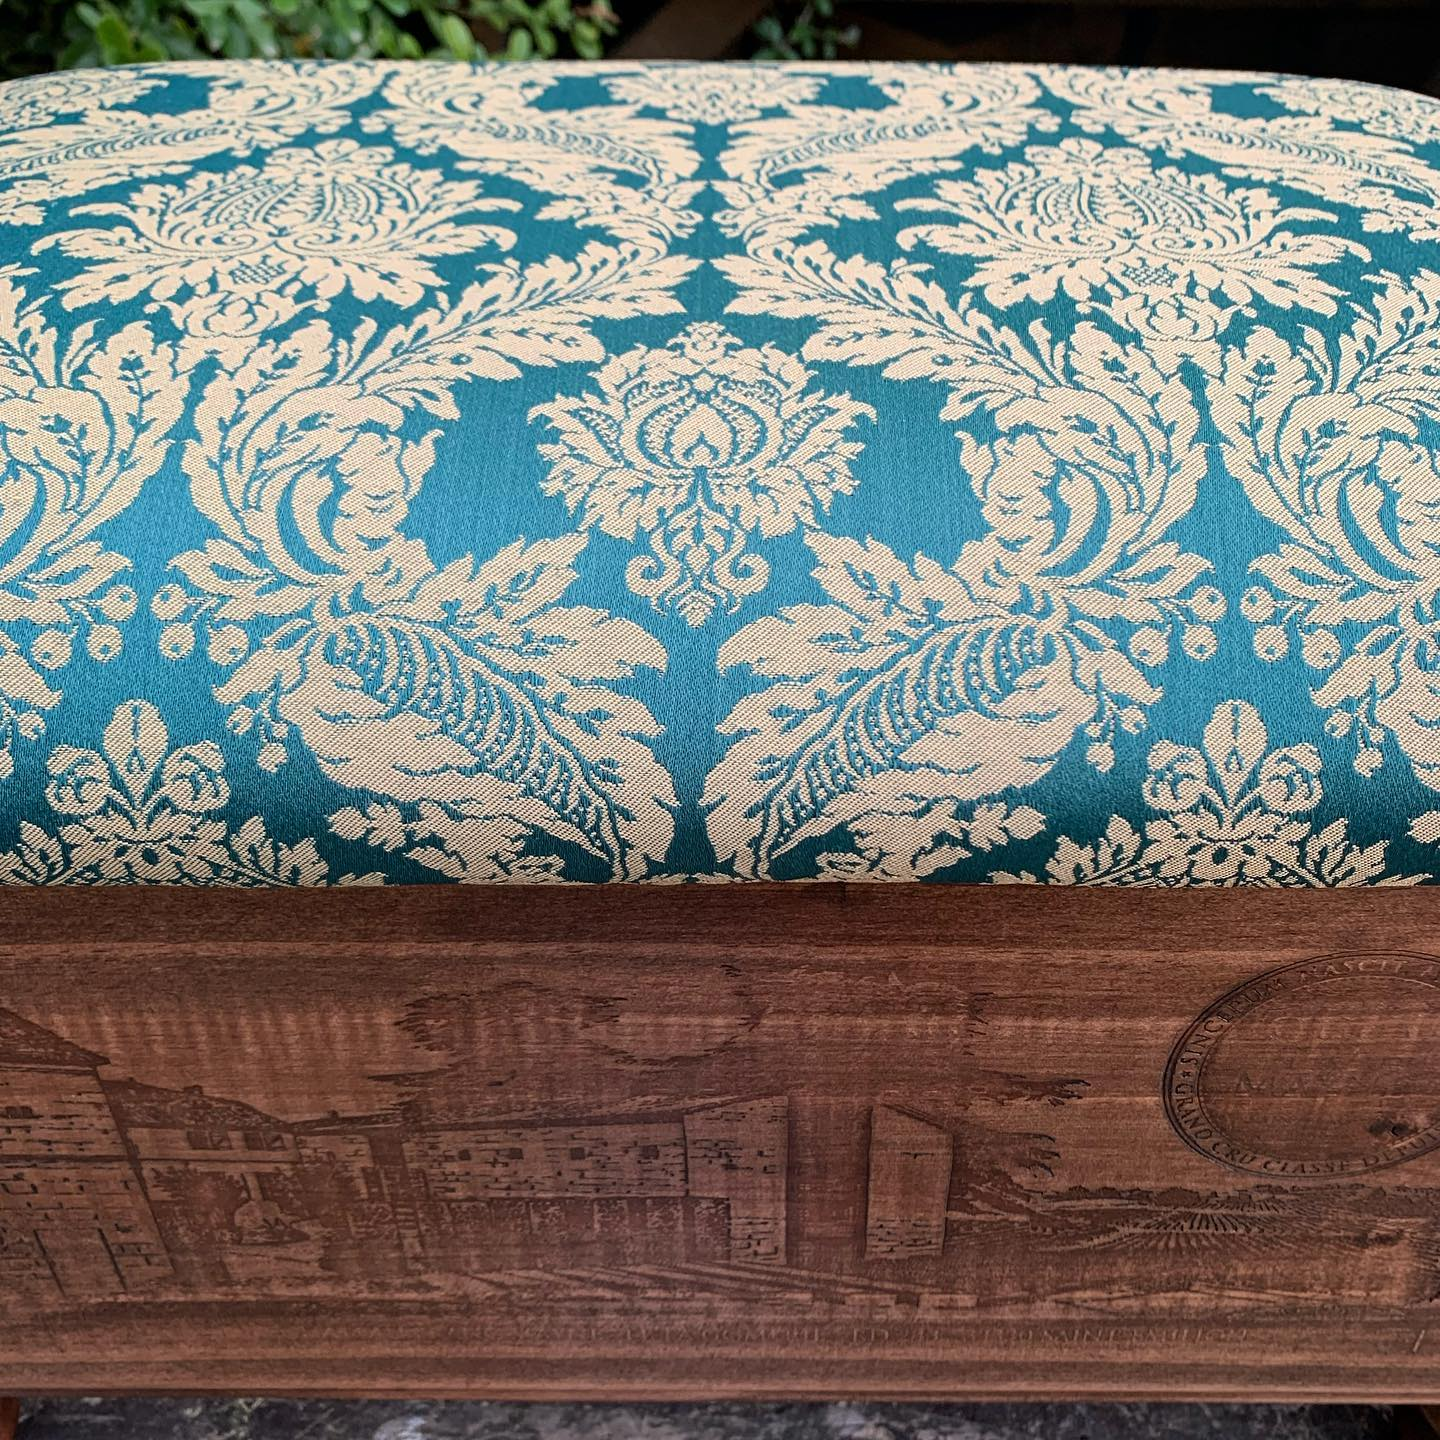 I'm really excited about this ottoman! This fabric has been selected to fit with a gorgeous teal decor ...#teal #damask #jacquard #matchingnotmatching #colourscheme #livingroomdecor #handcrafted #homewares #ottoman #bygingerandtweed #smallbusiness #proud